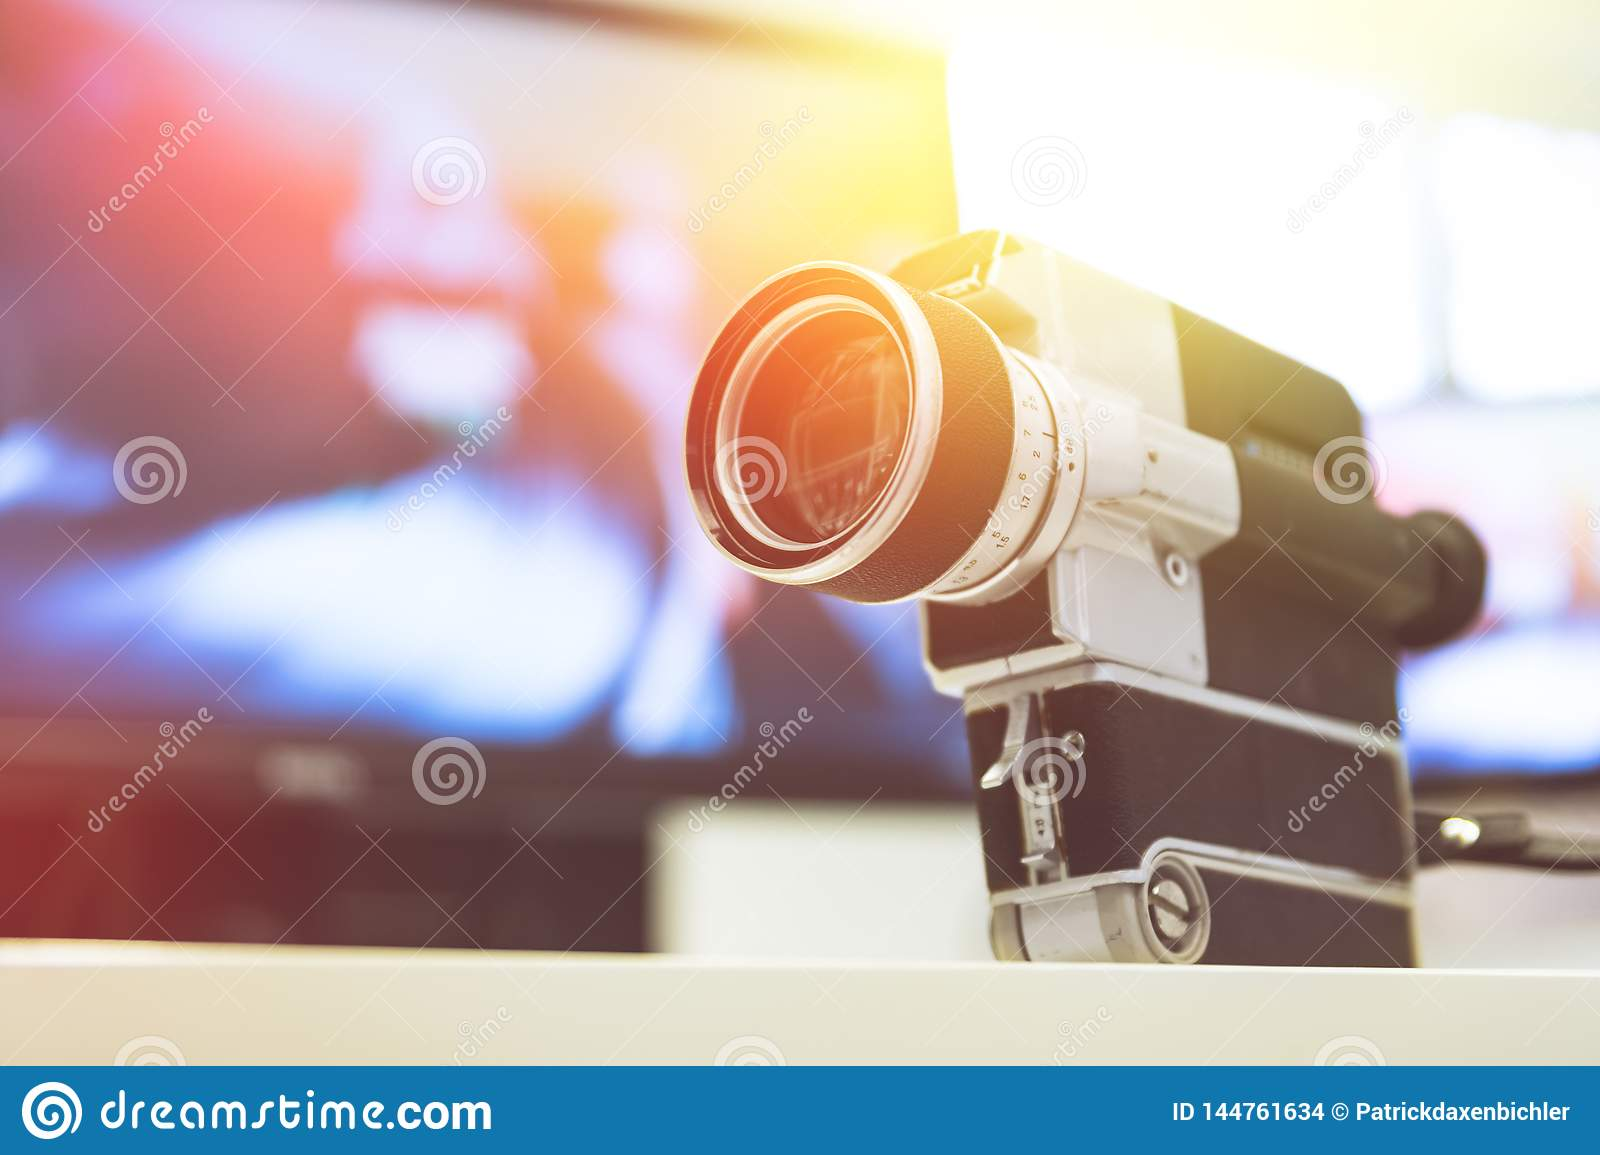 Movie Production Vintage Old Movie Camera On A Desk Cutting Room In The Background Sunshine Photo Stock Image Du Room Background 144761634